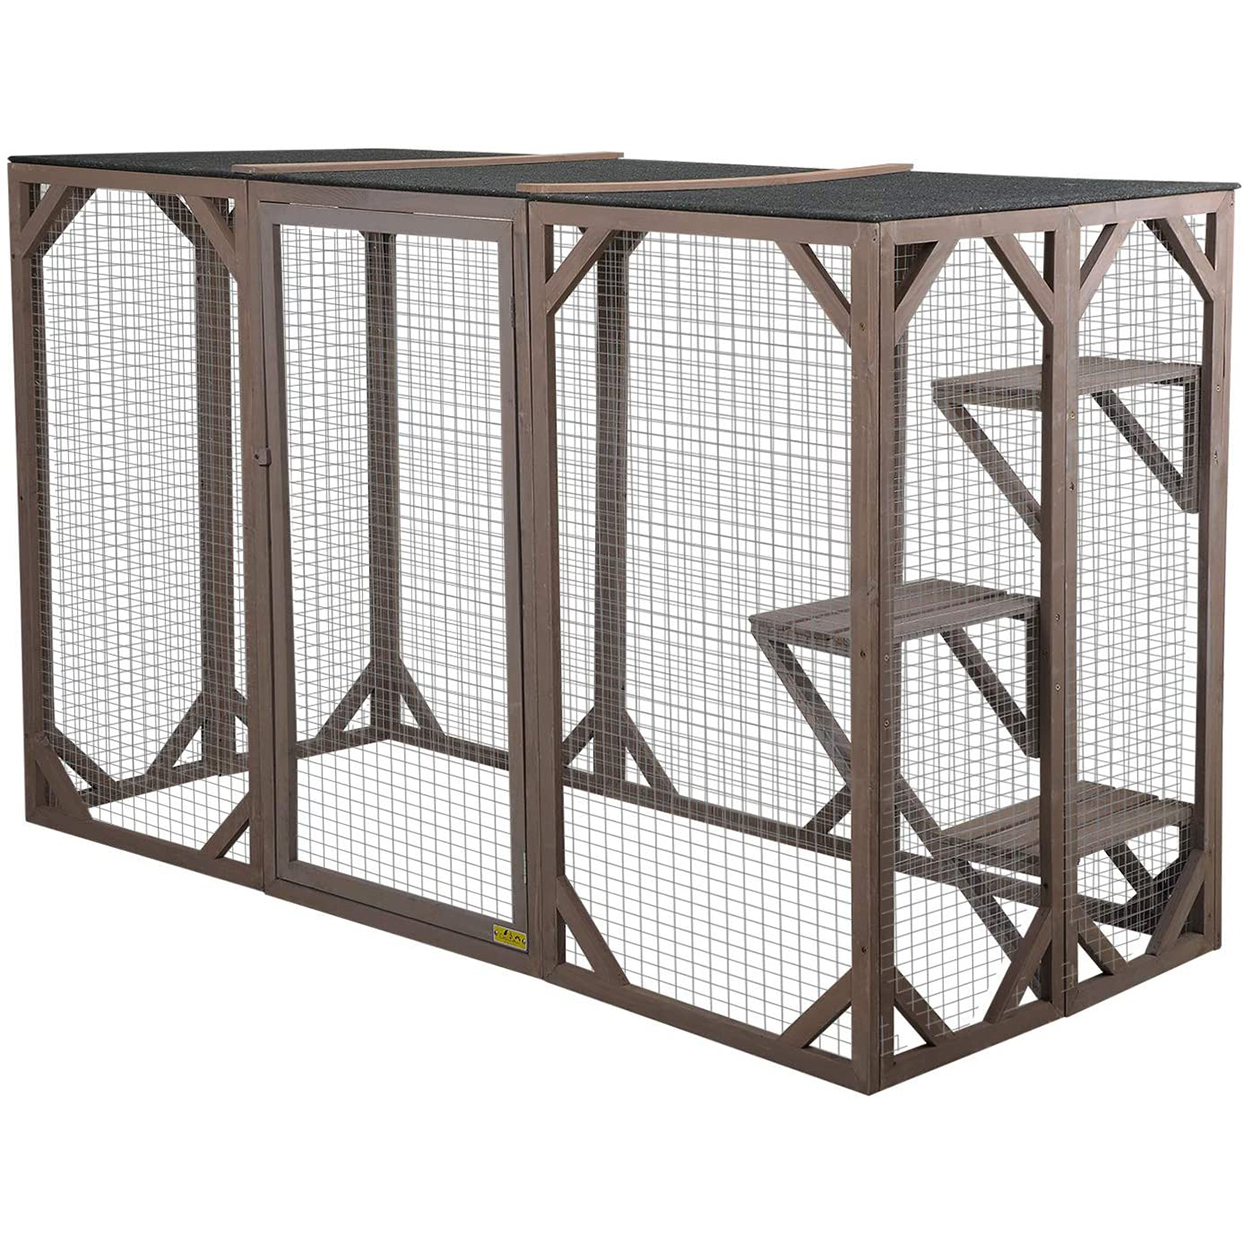 Large wooden catio